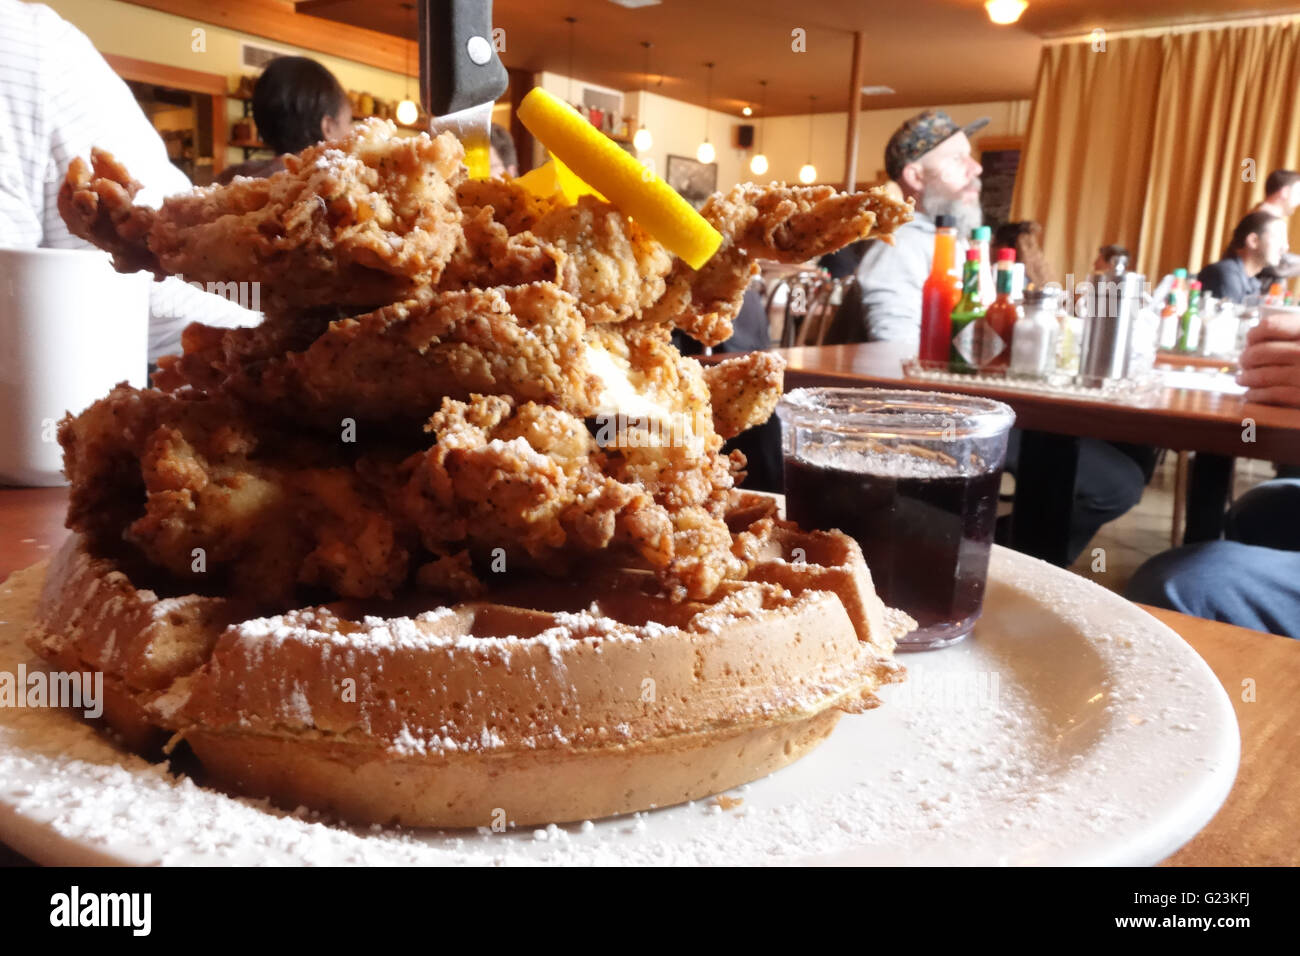 fried chicken waffles inside restaurant - Stock Image